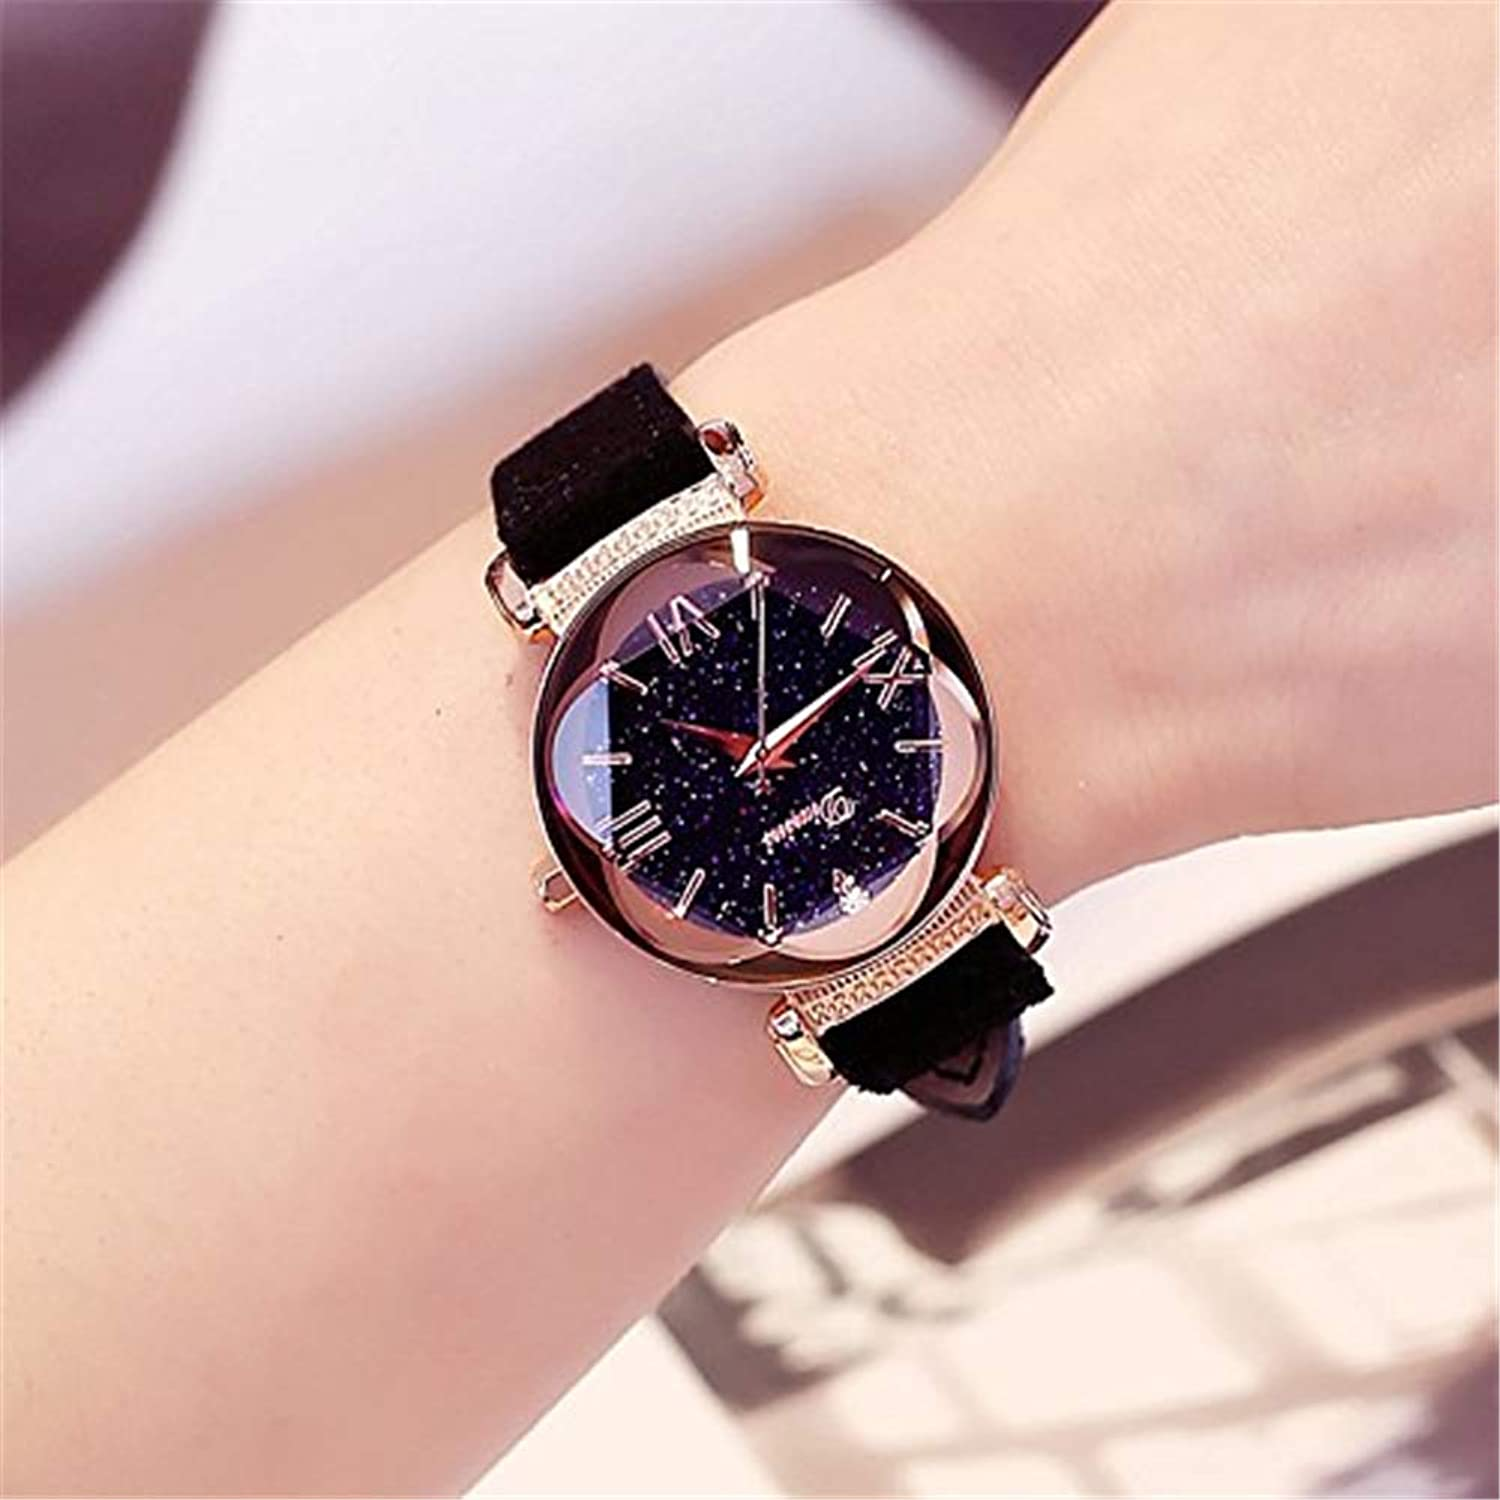 ANNIECLazy Watch Girl Star Student Trend Waterproof Authentic 2018